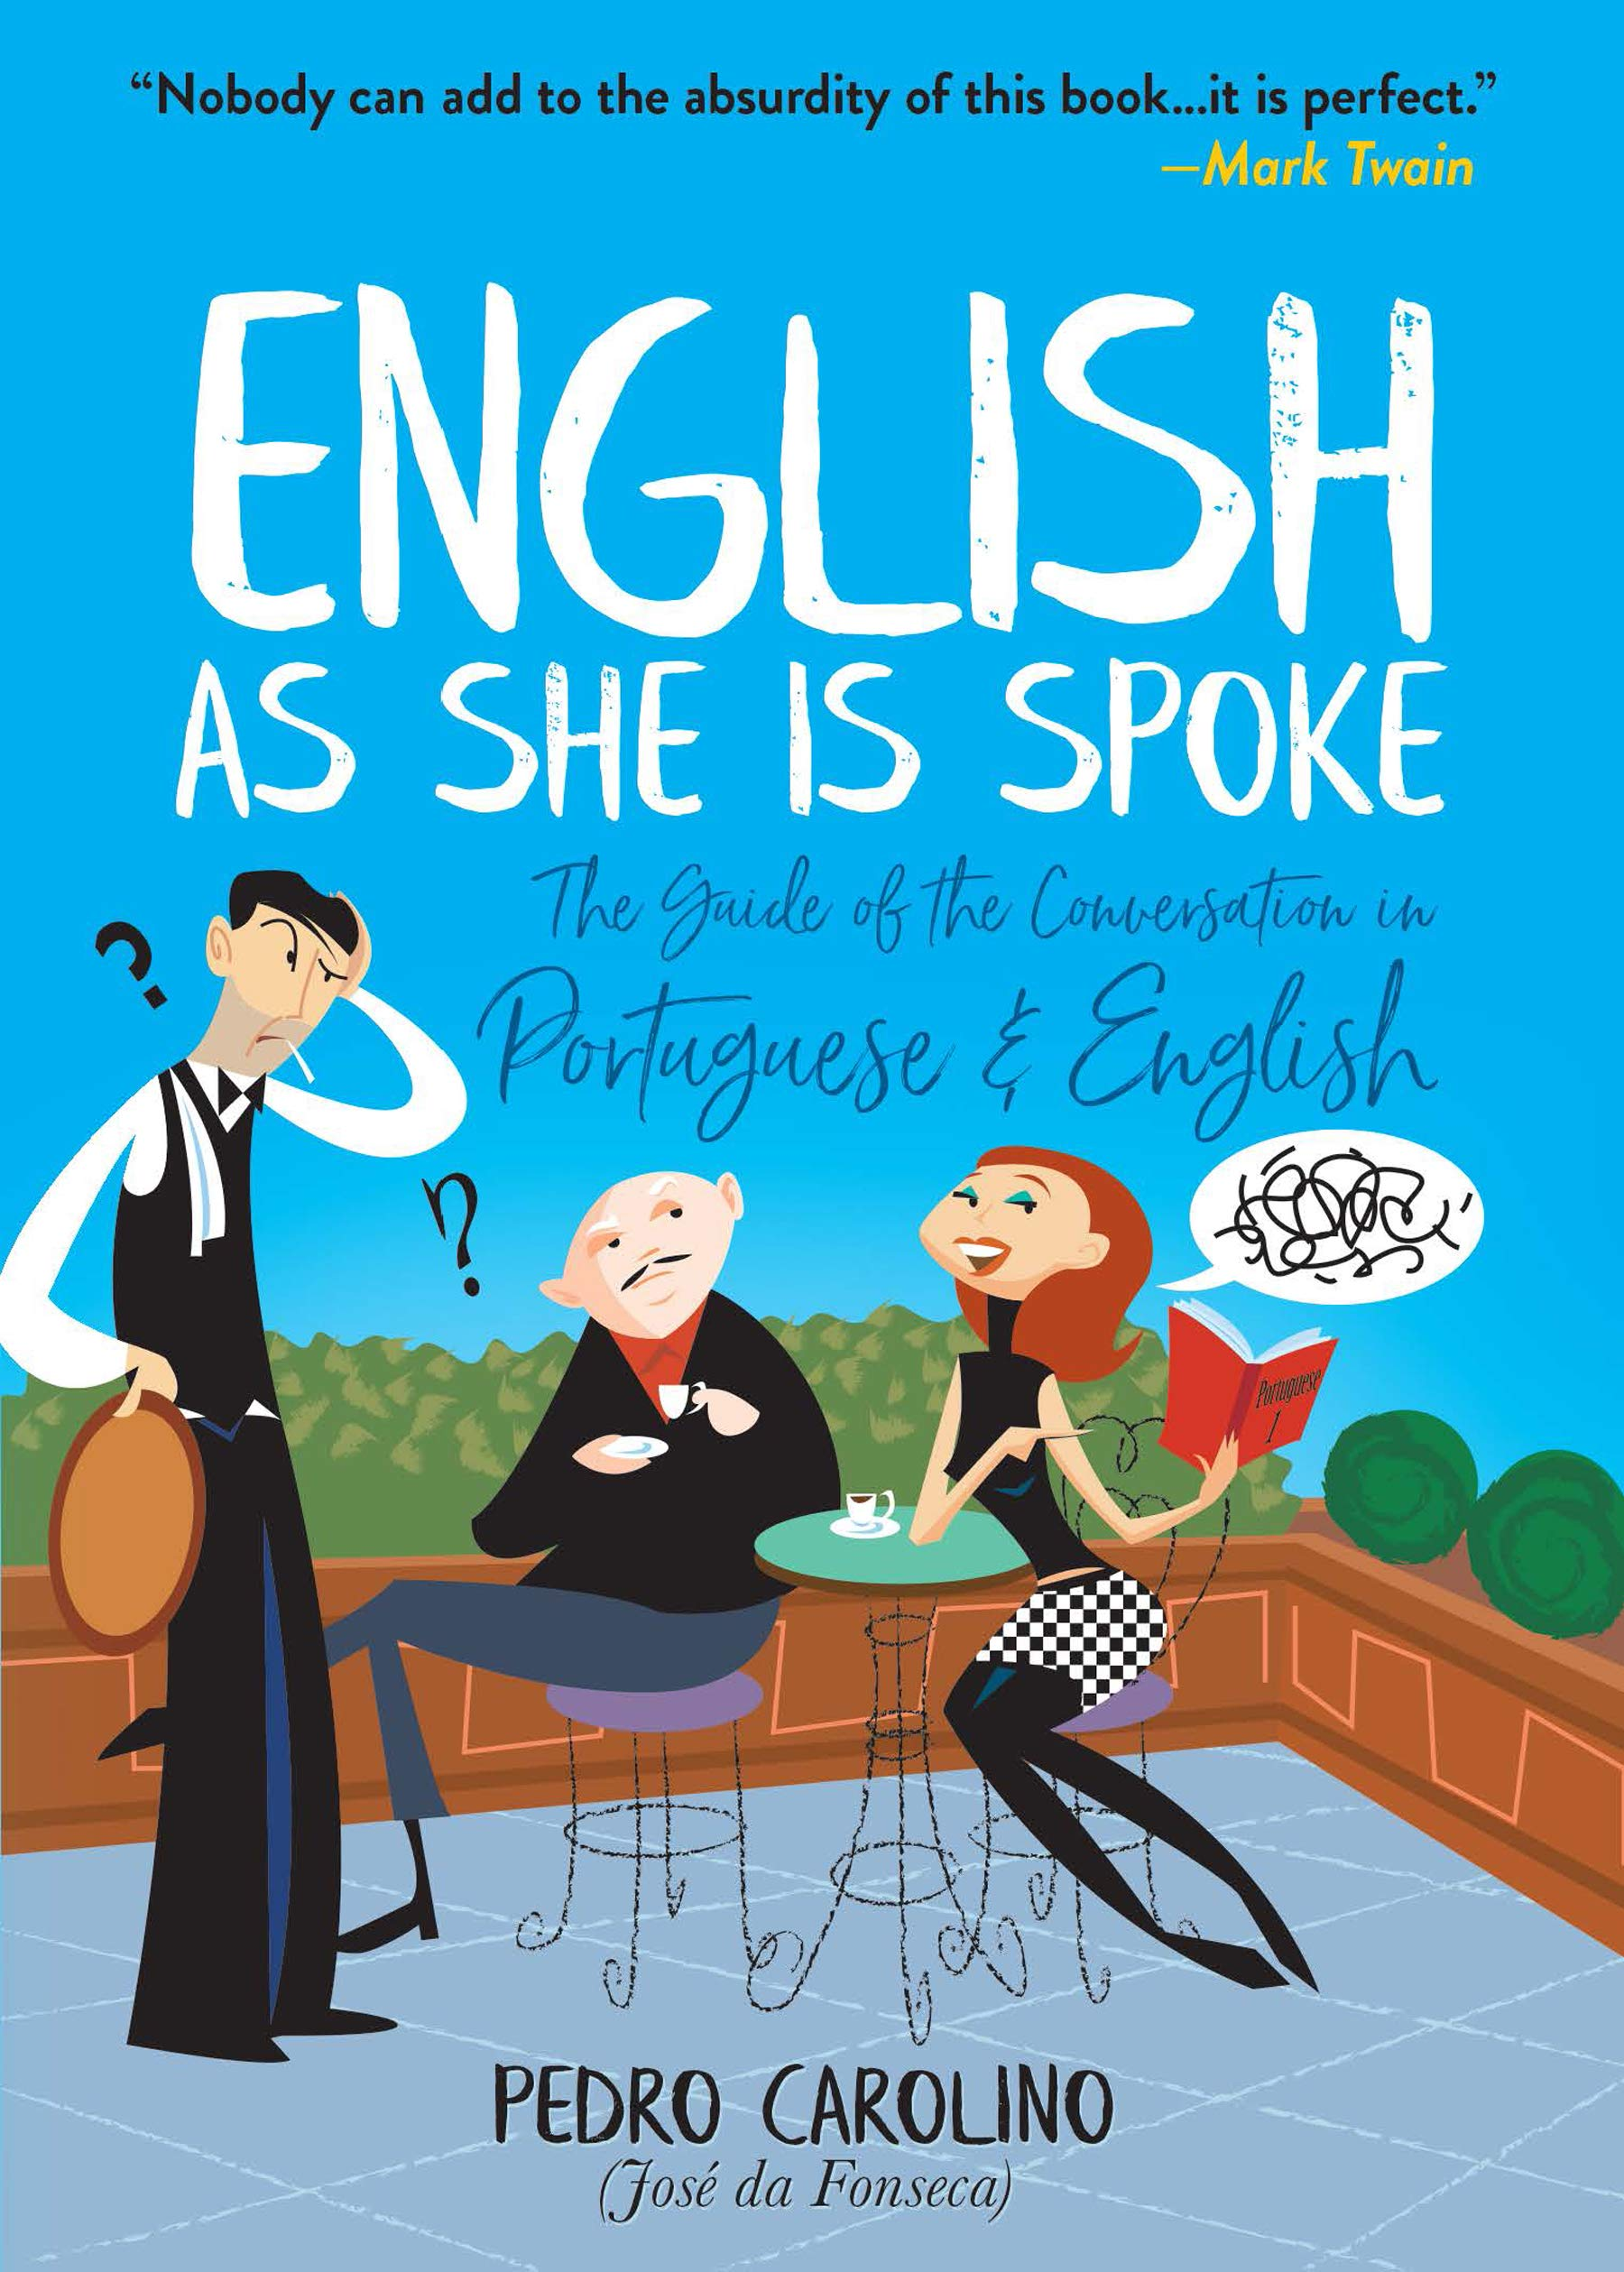 Image OfEnglish As She Is Spoke: The Guide Of The Conversation In Portuguese And English